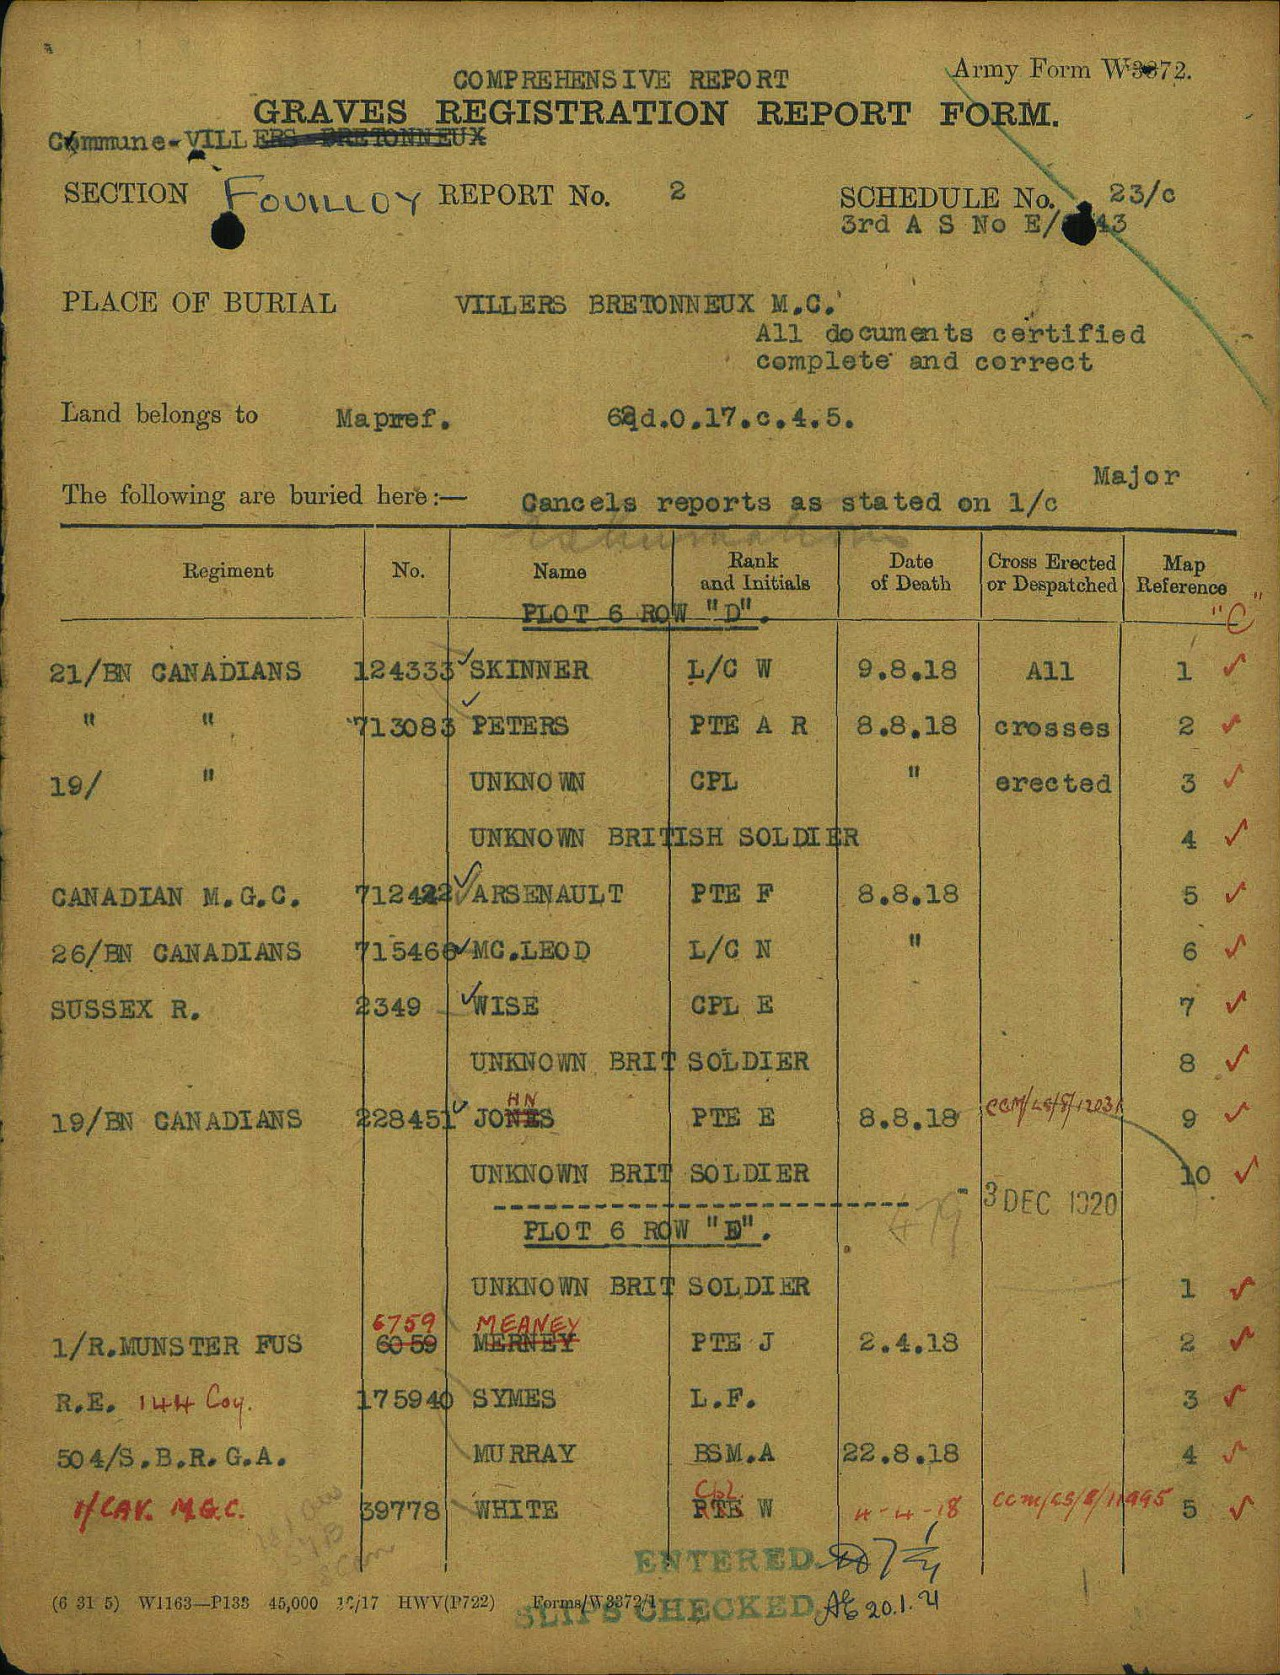 "Grave Registration Report– Original ""Graves Registration Report Form"" (GRRF) of the CWGC that shows that Plot 6 Row D Grave 3 at the Villers-Bretonneux Military Cemetery contains the remains of an Unknown Corporal of the 19th Battalion Canadians, who was killed on 8 August 1918."